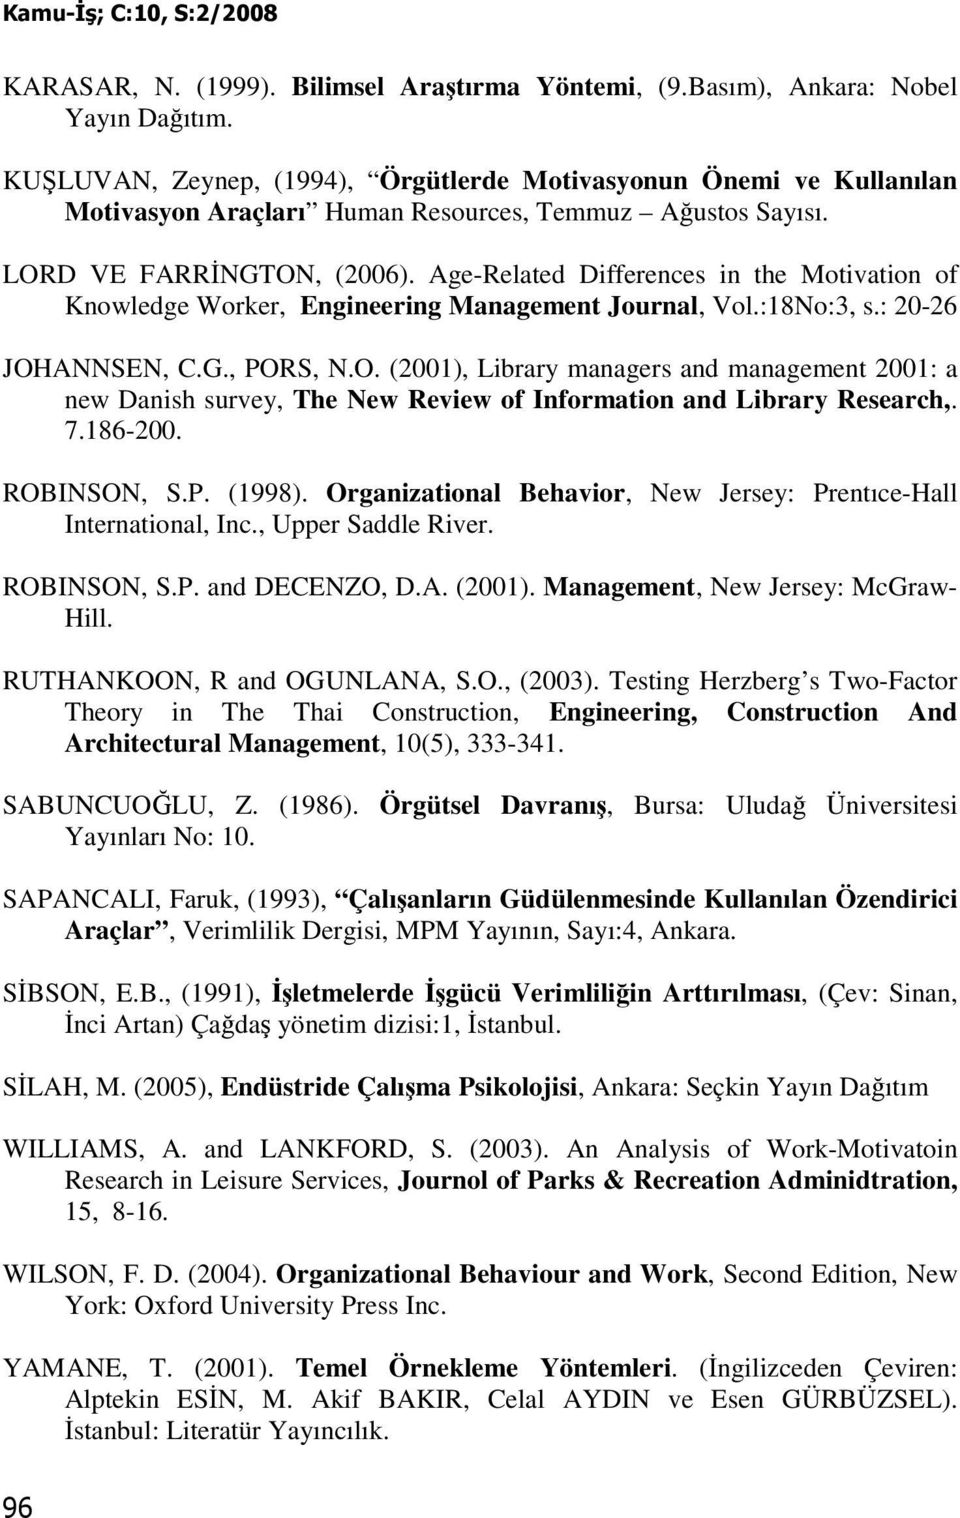 Age-Related Differences in the Motivation of Knowledge Worker, Engineering Management Journal, Vol.:18No:3, s.: 20-26 JOH